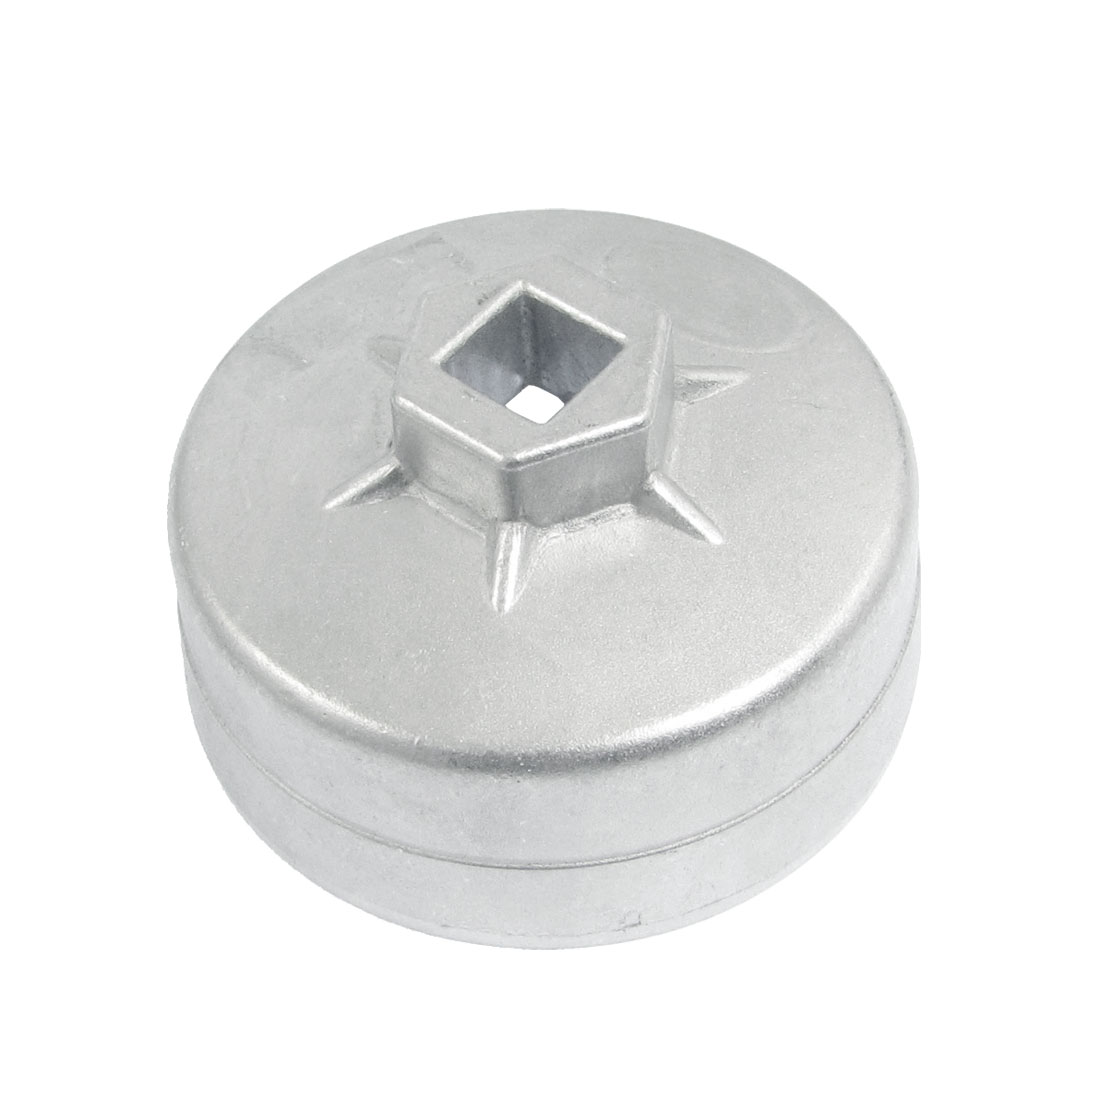 Car Auto Cap Oil Filter Socket Wrench Cup Tool 74mm 15 Flutes